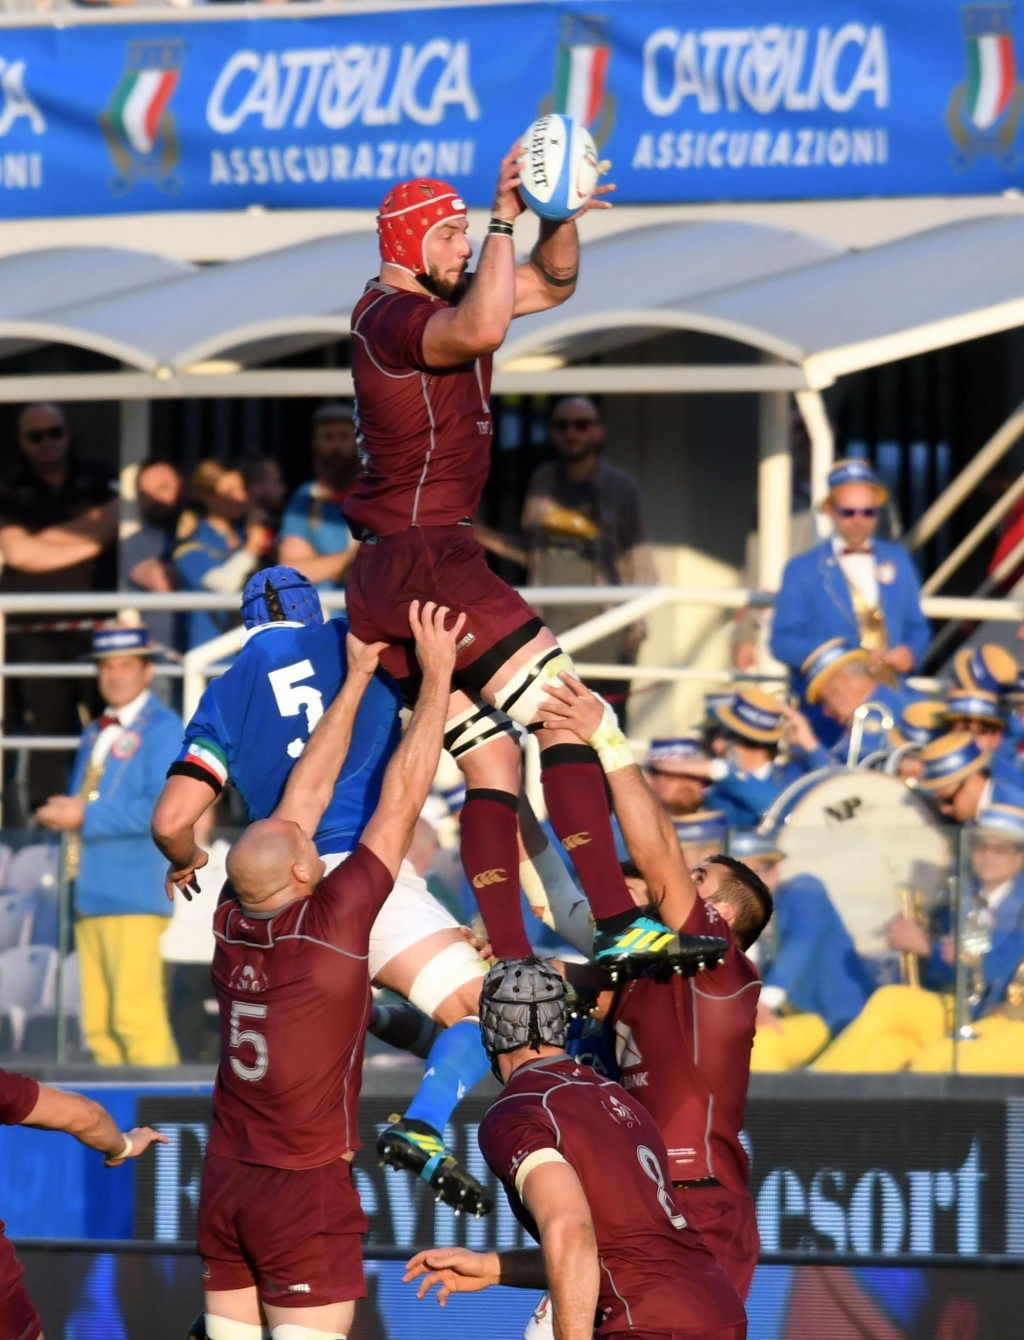 Georgia's Nodar Cheishvili wins a lineout during the international rugby match between Italy and Georgia, at the Artemio Franchi stadium in Florence,